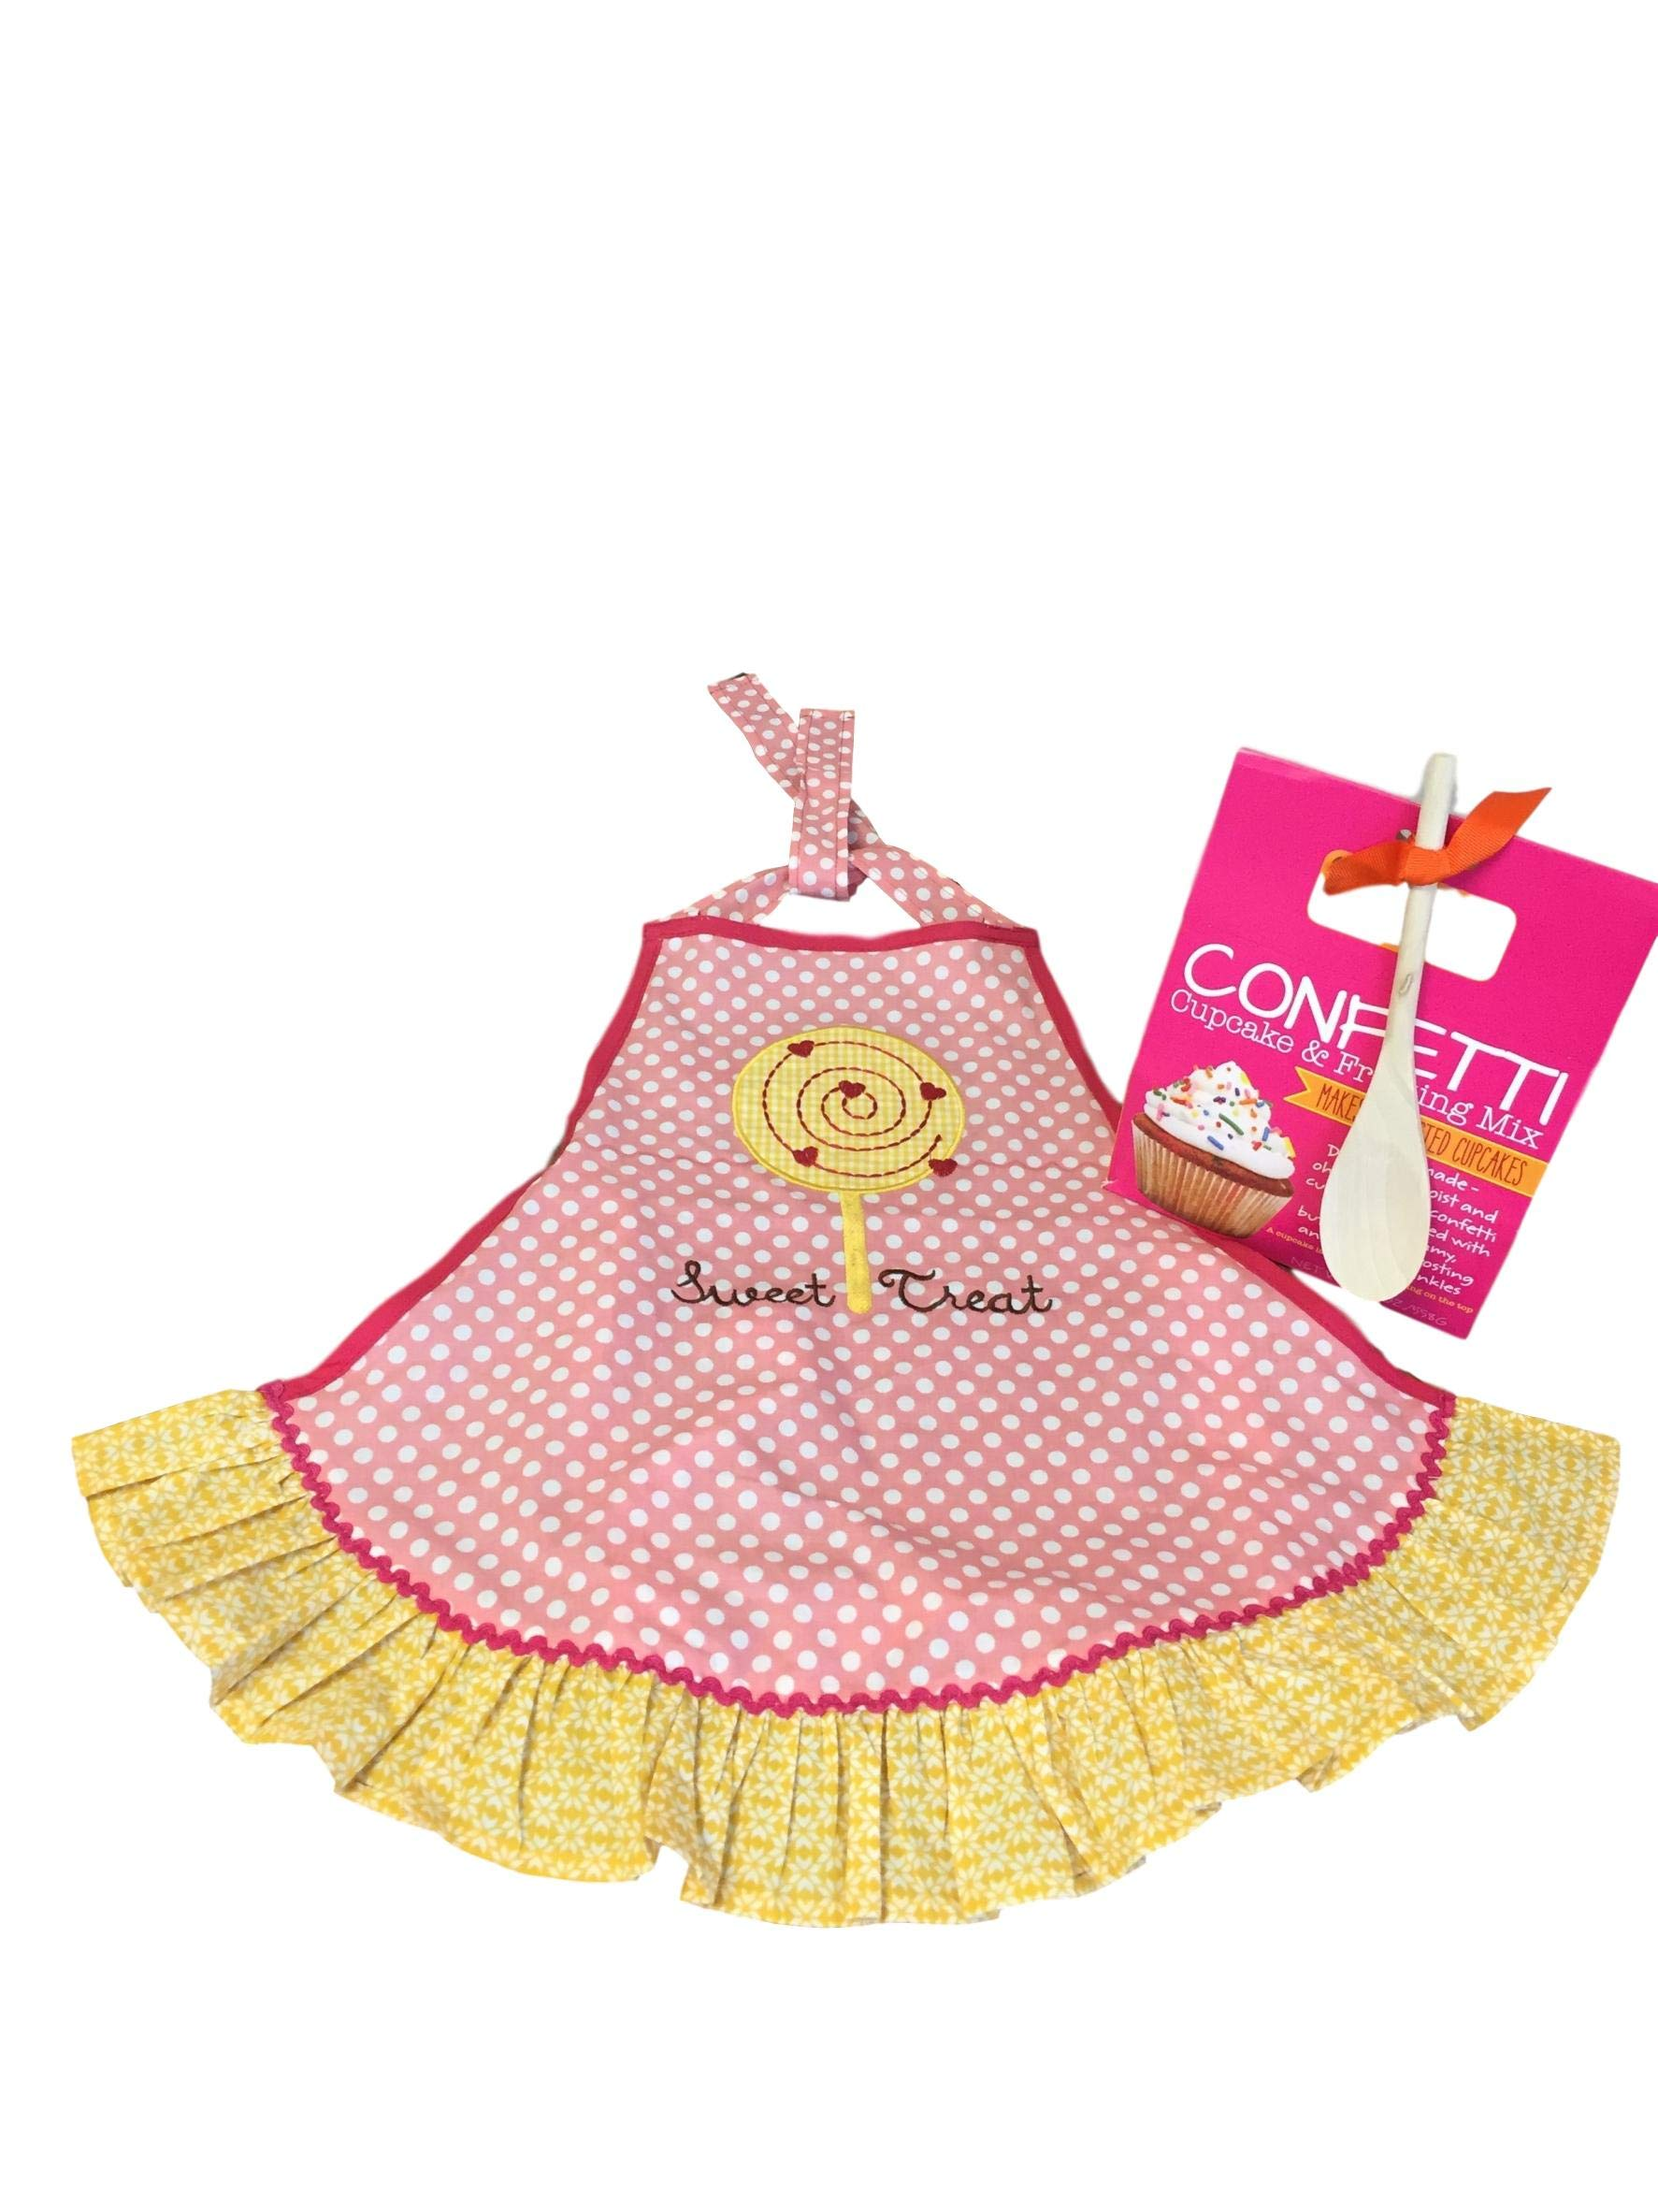 Baking Bundle with Girl's 'Sweet Treat' Apron and Confetti Cupcake & Frosting Kit